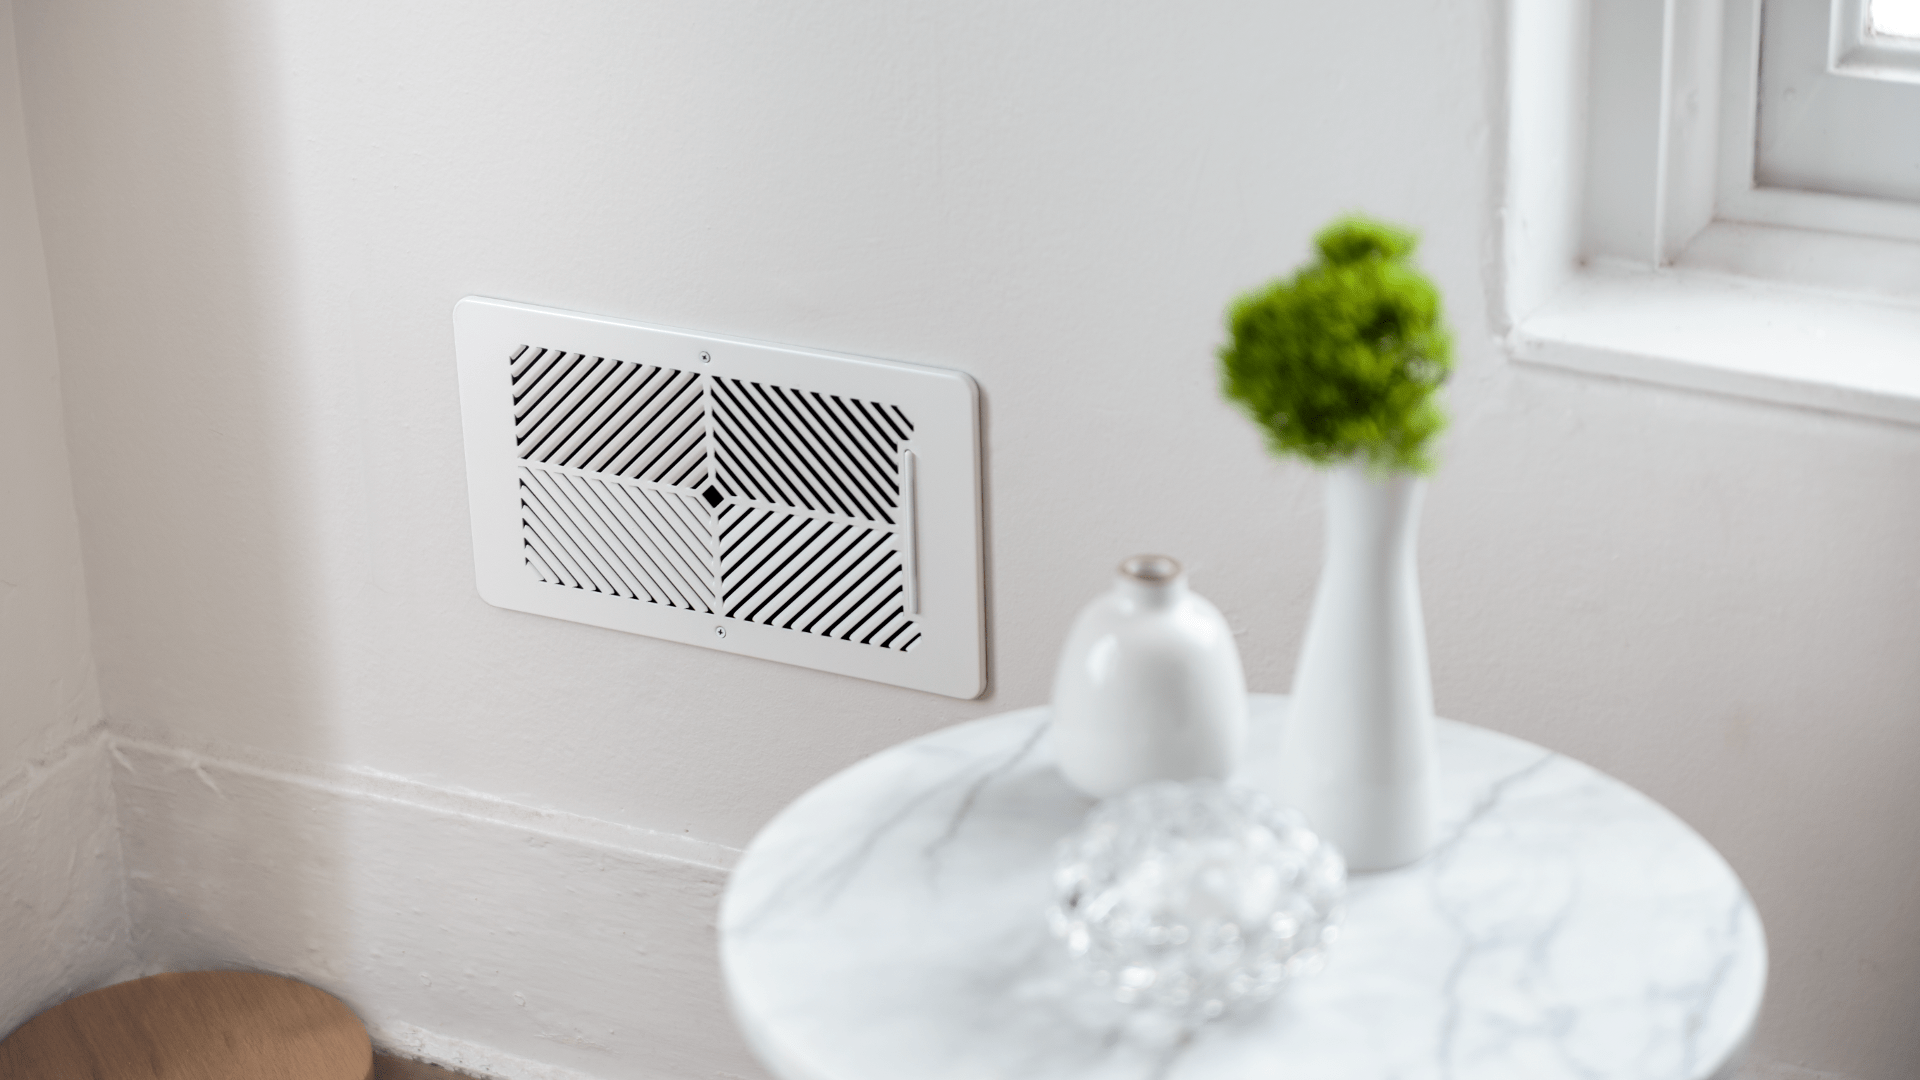 The Perfect Temperature In Every Room with your Google Nest thermostat